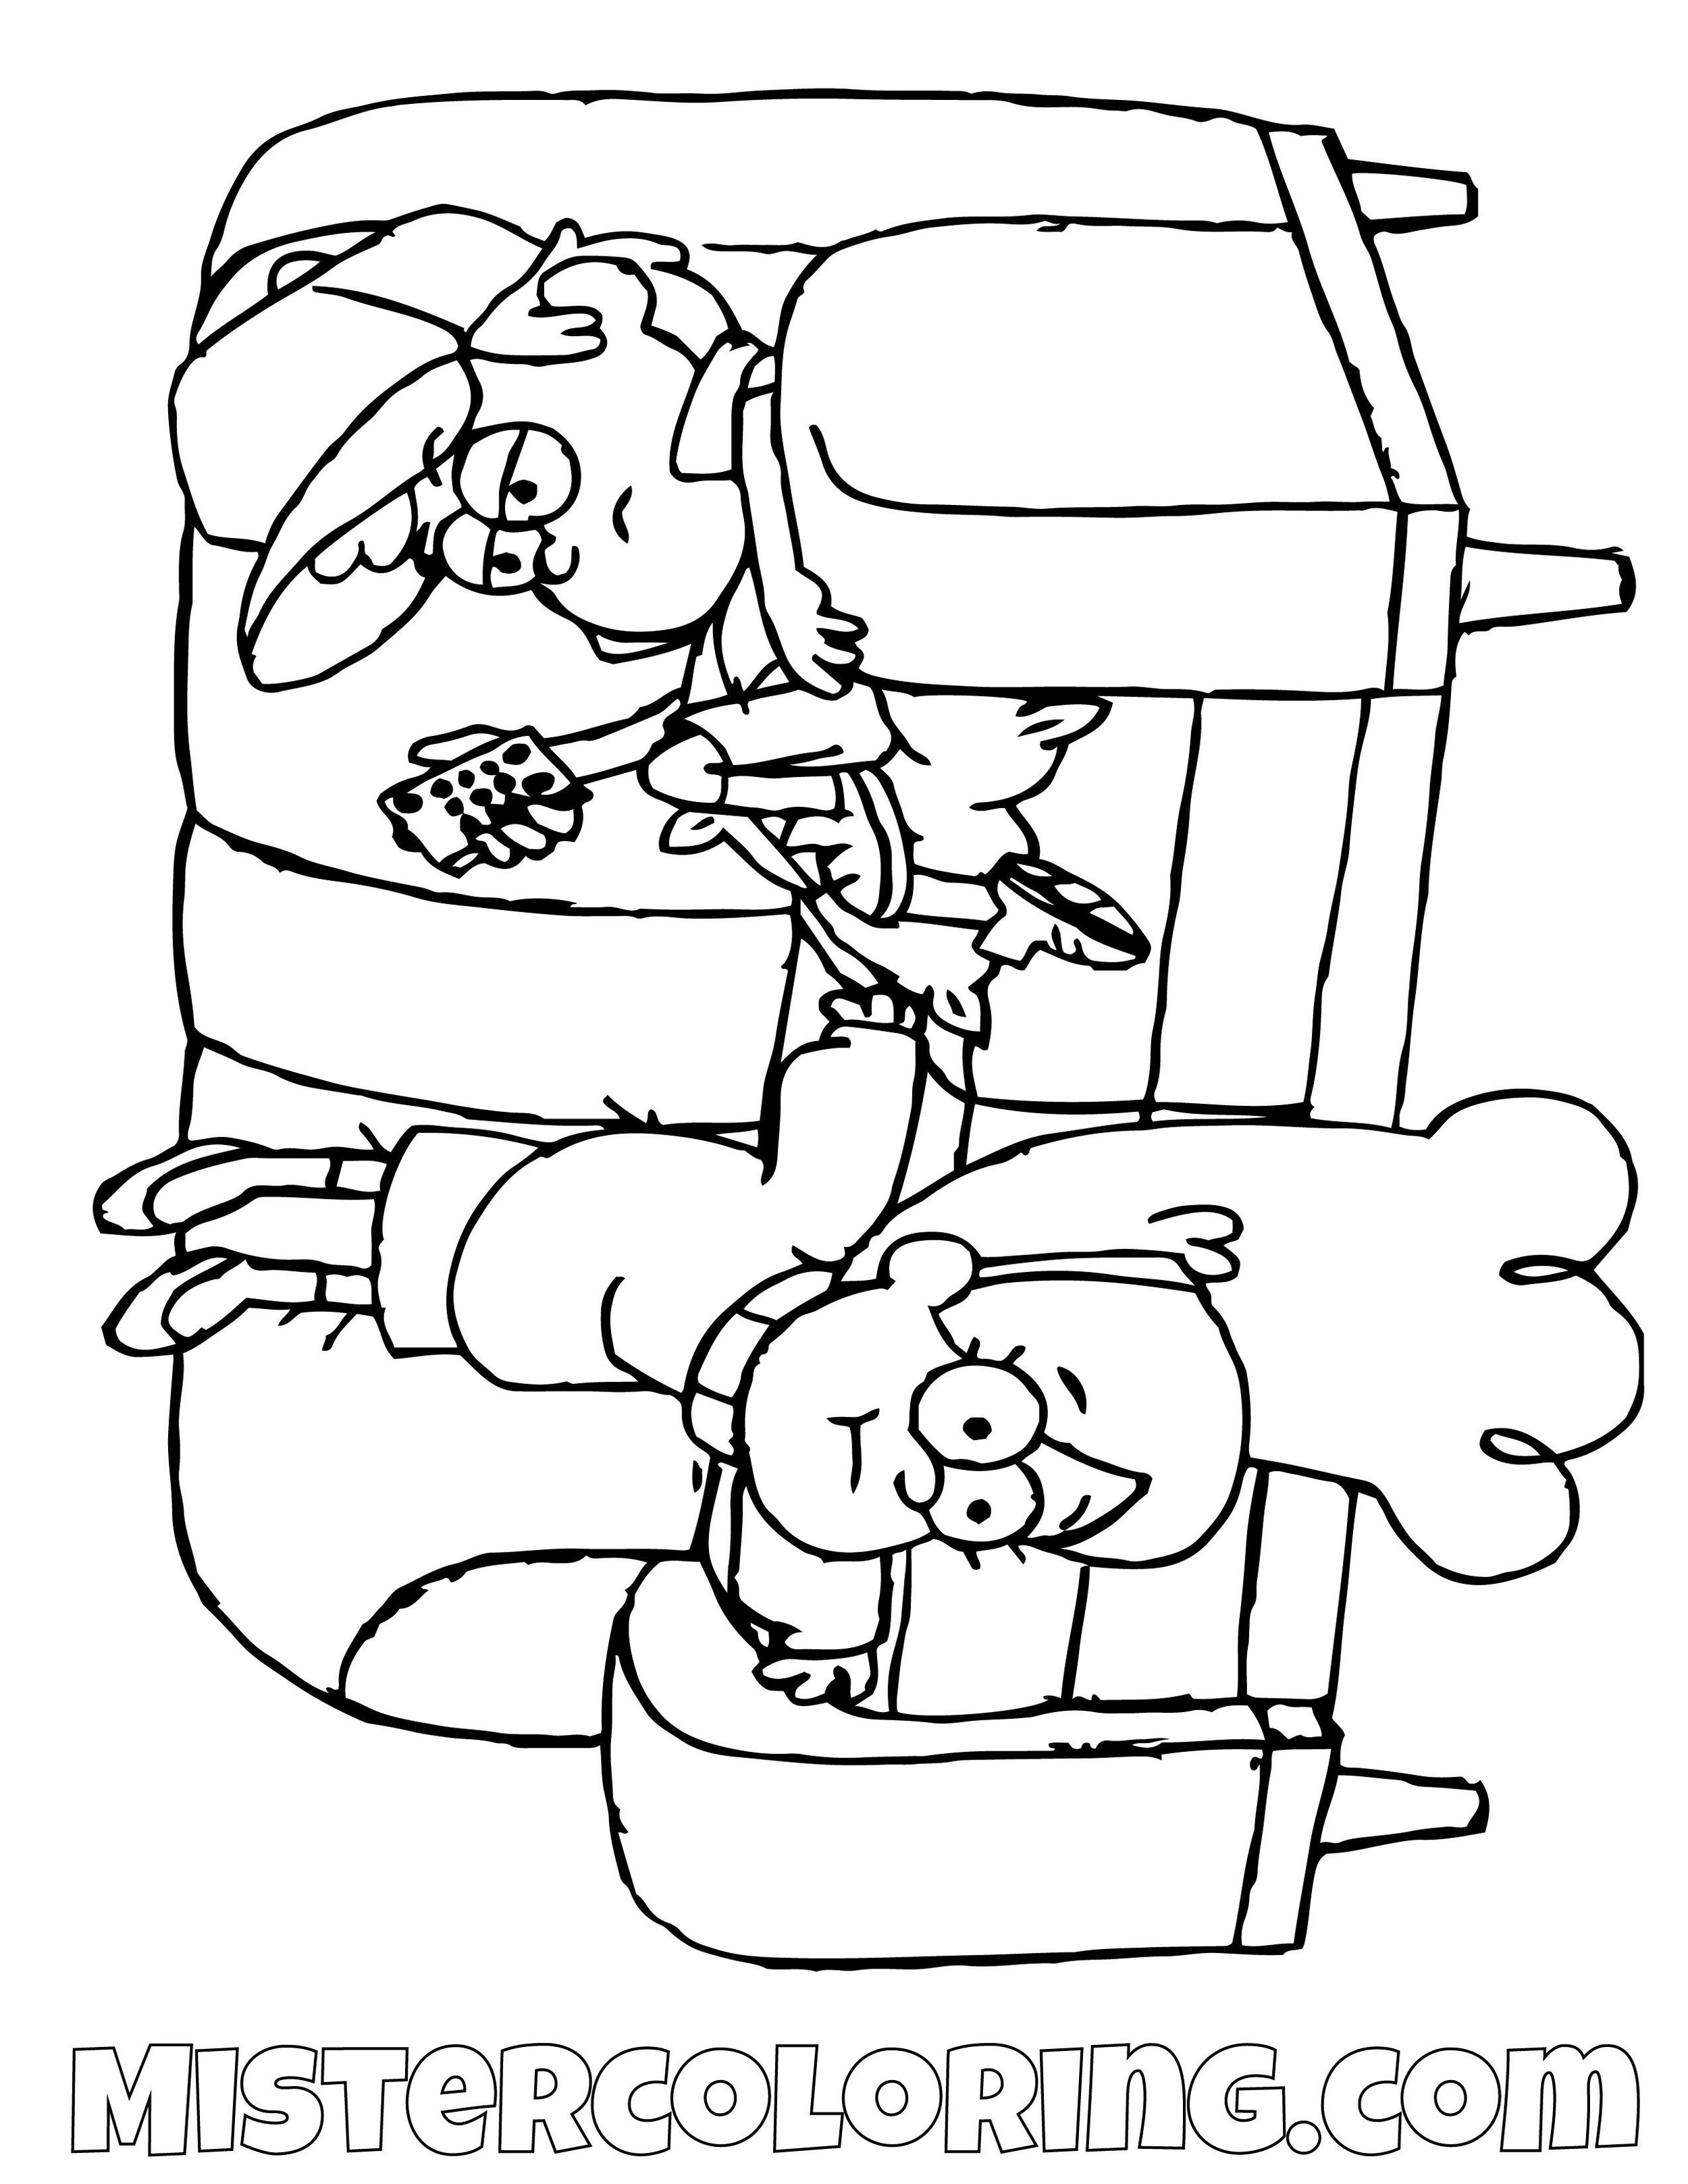 Dipper And Mabel Pines On Sofa Gravity Falls Coloring Pages